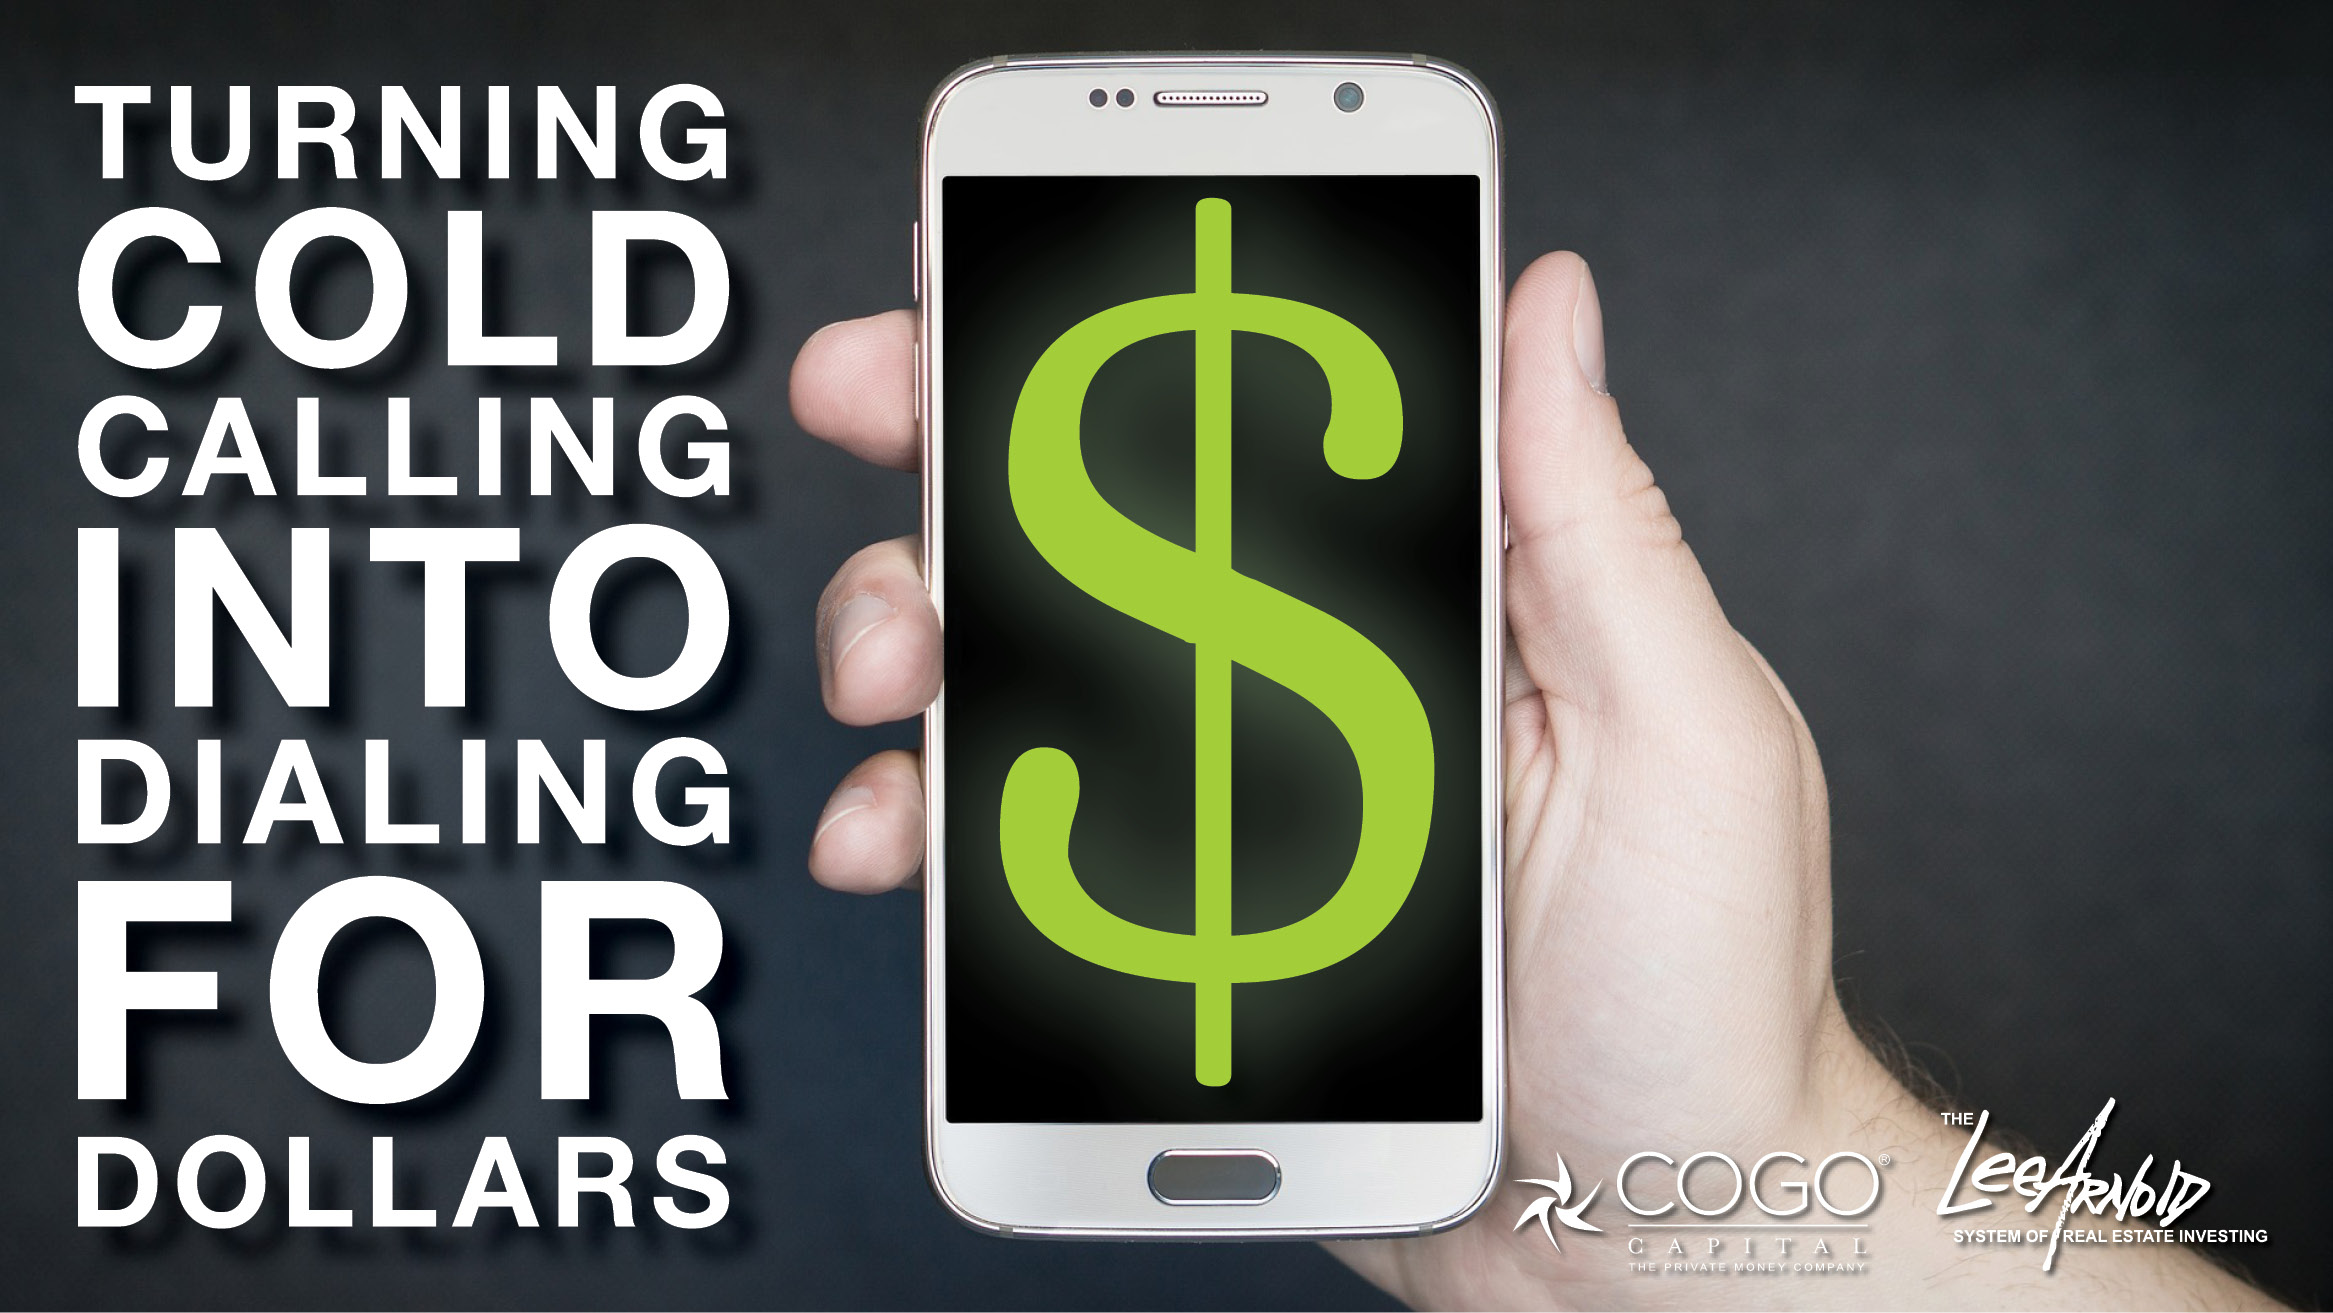 Turning Cold Calling into Dialing for Dollars